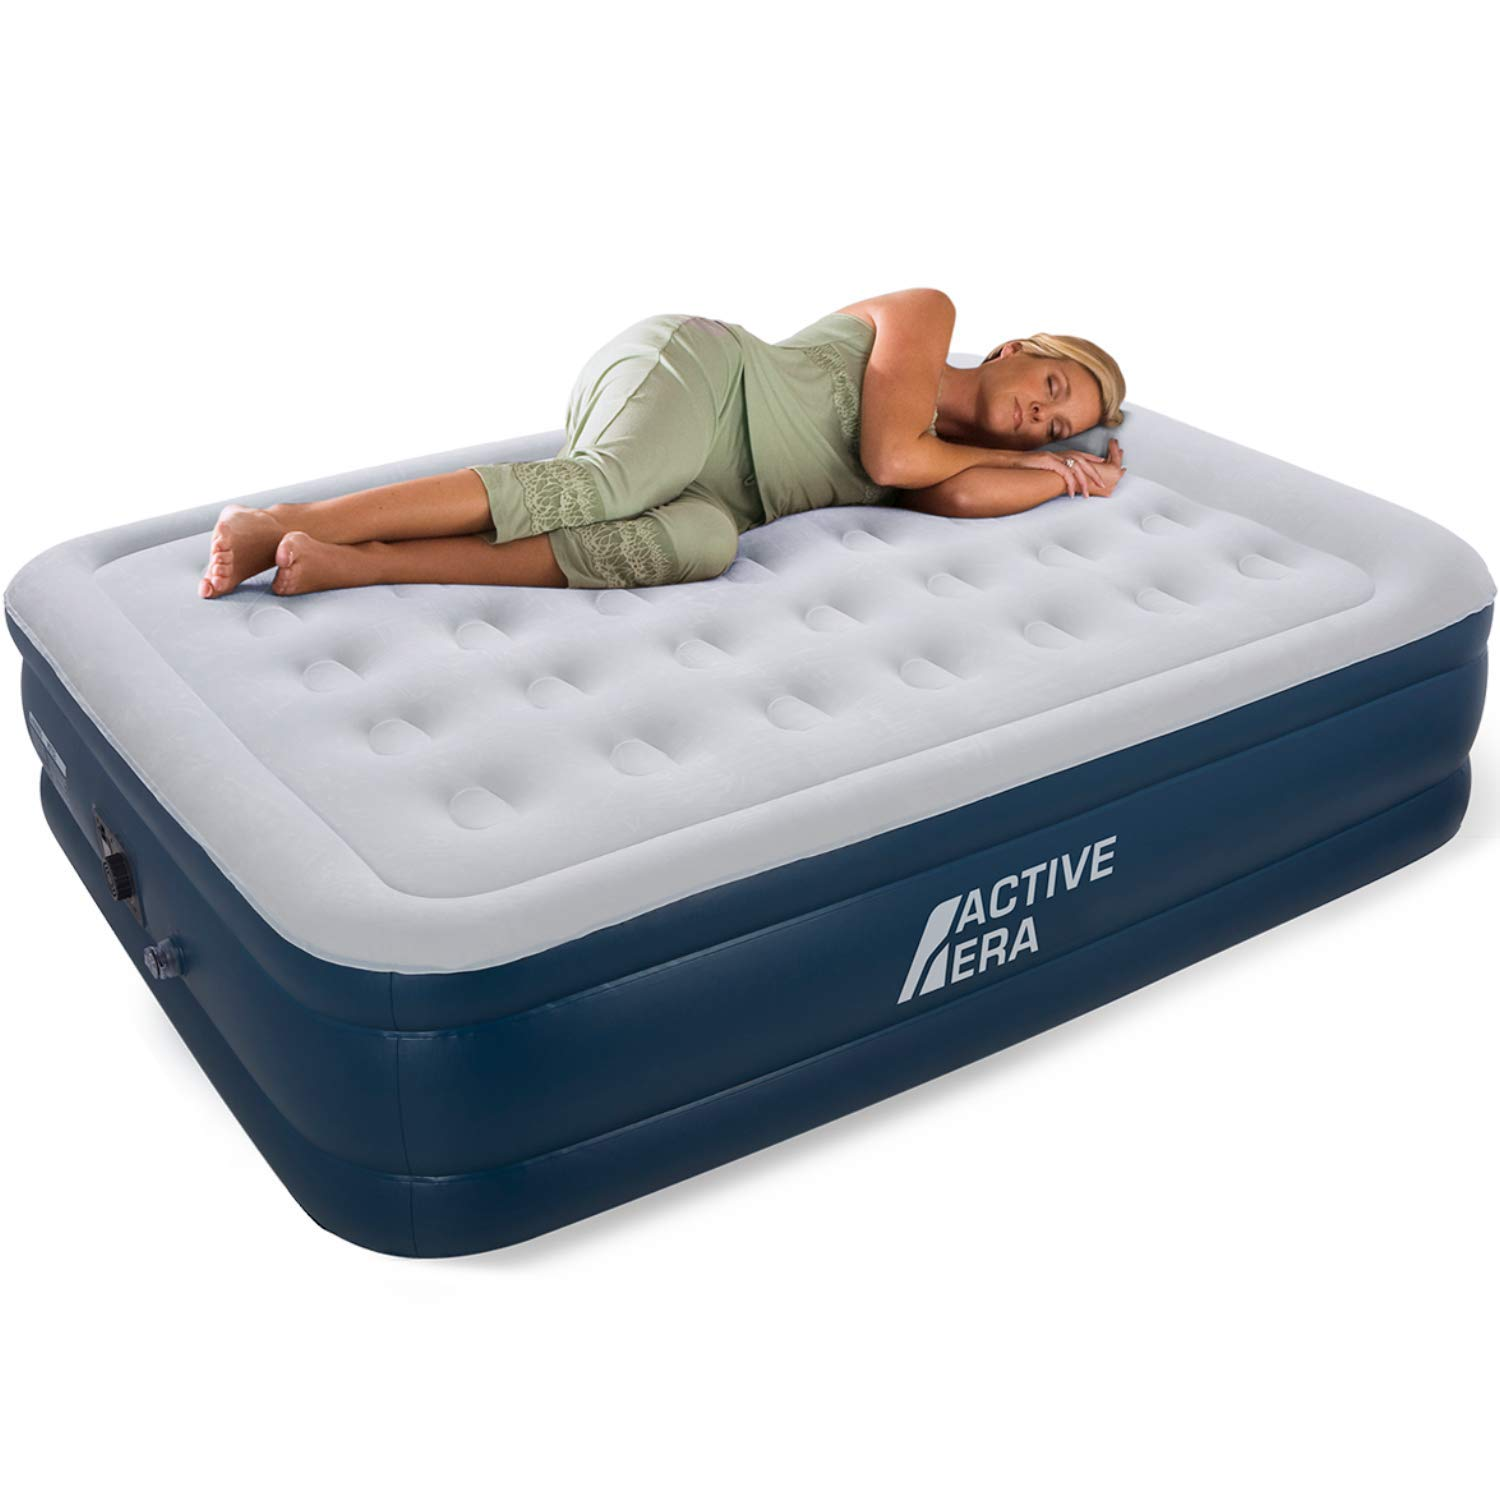 Active Era Premium King Size Air Bed With A Built In Electric Pump